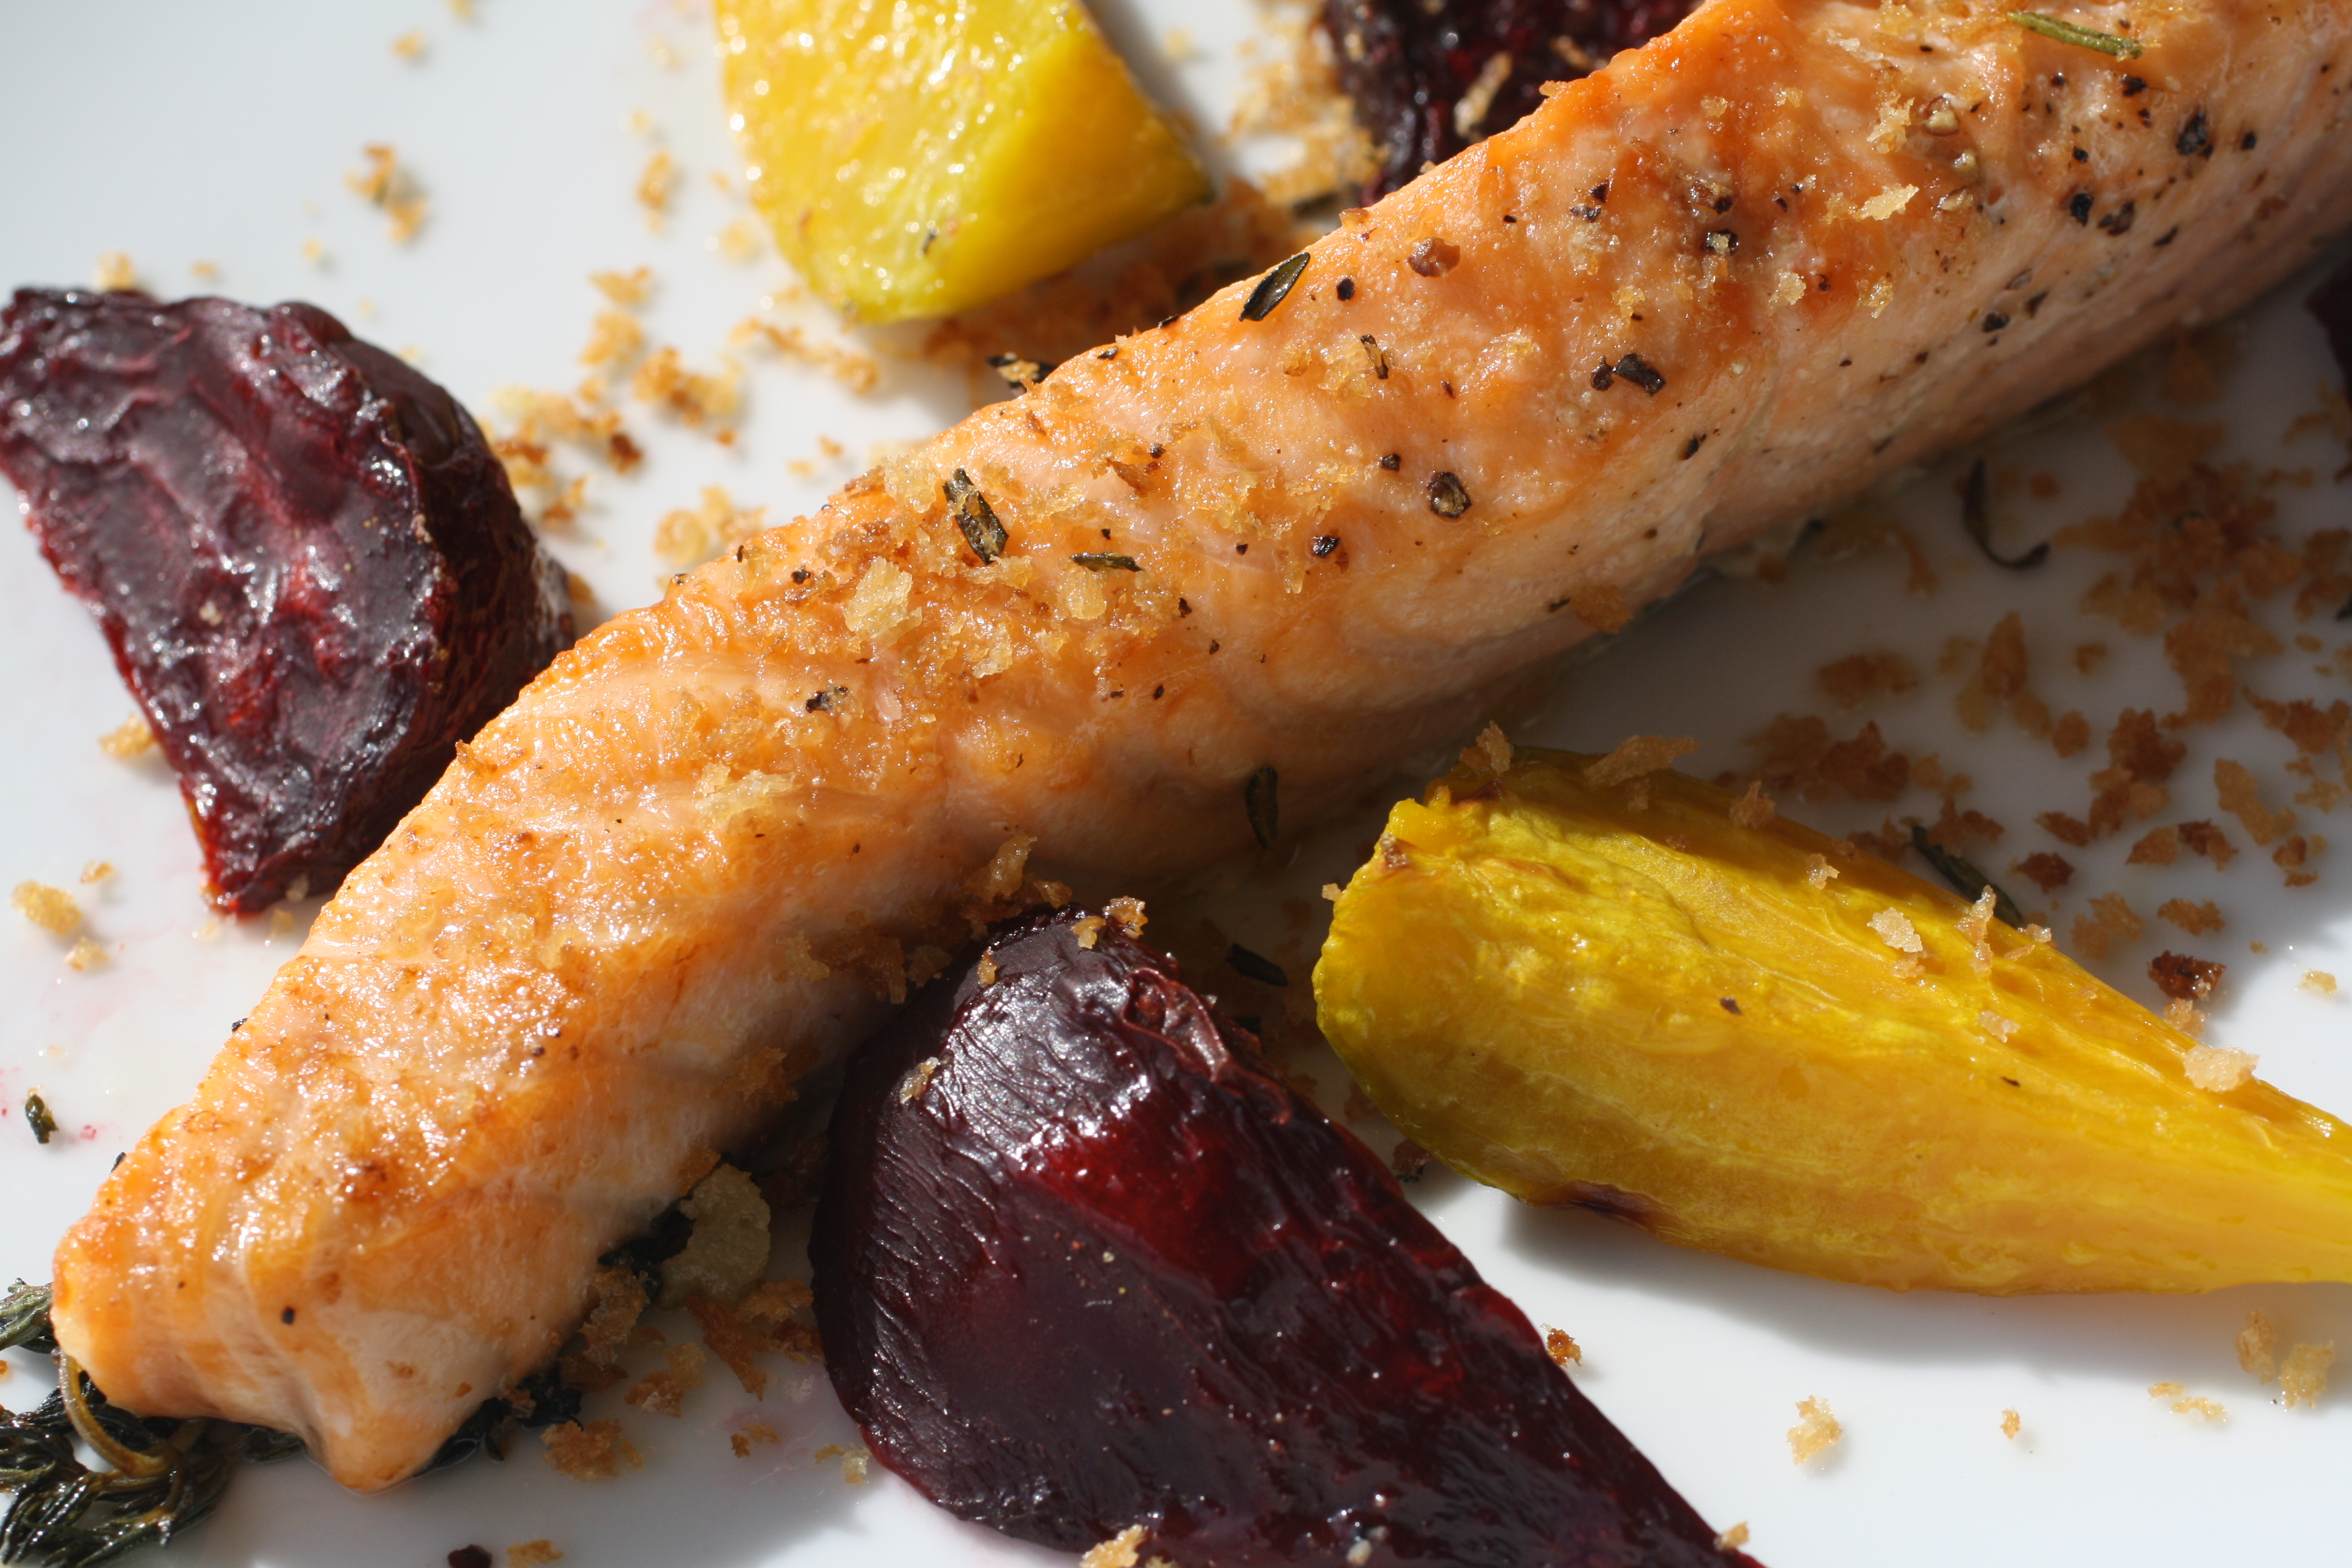 Crunchy Roasted Salmon with Beets